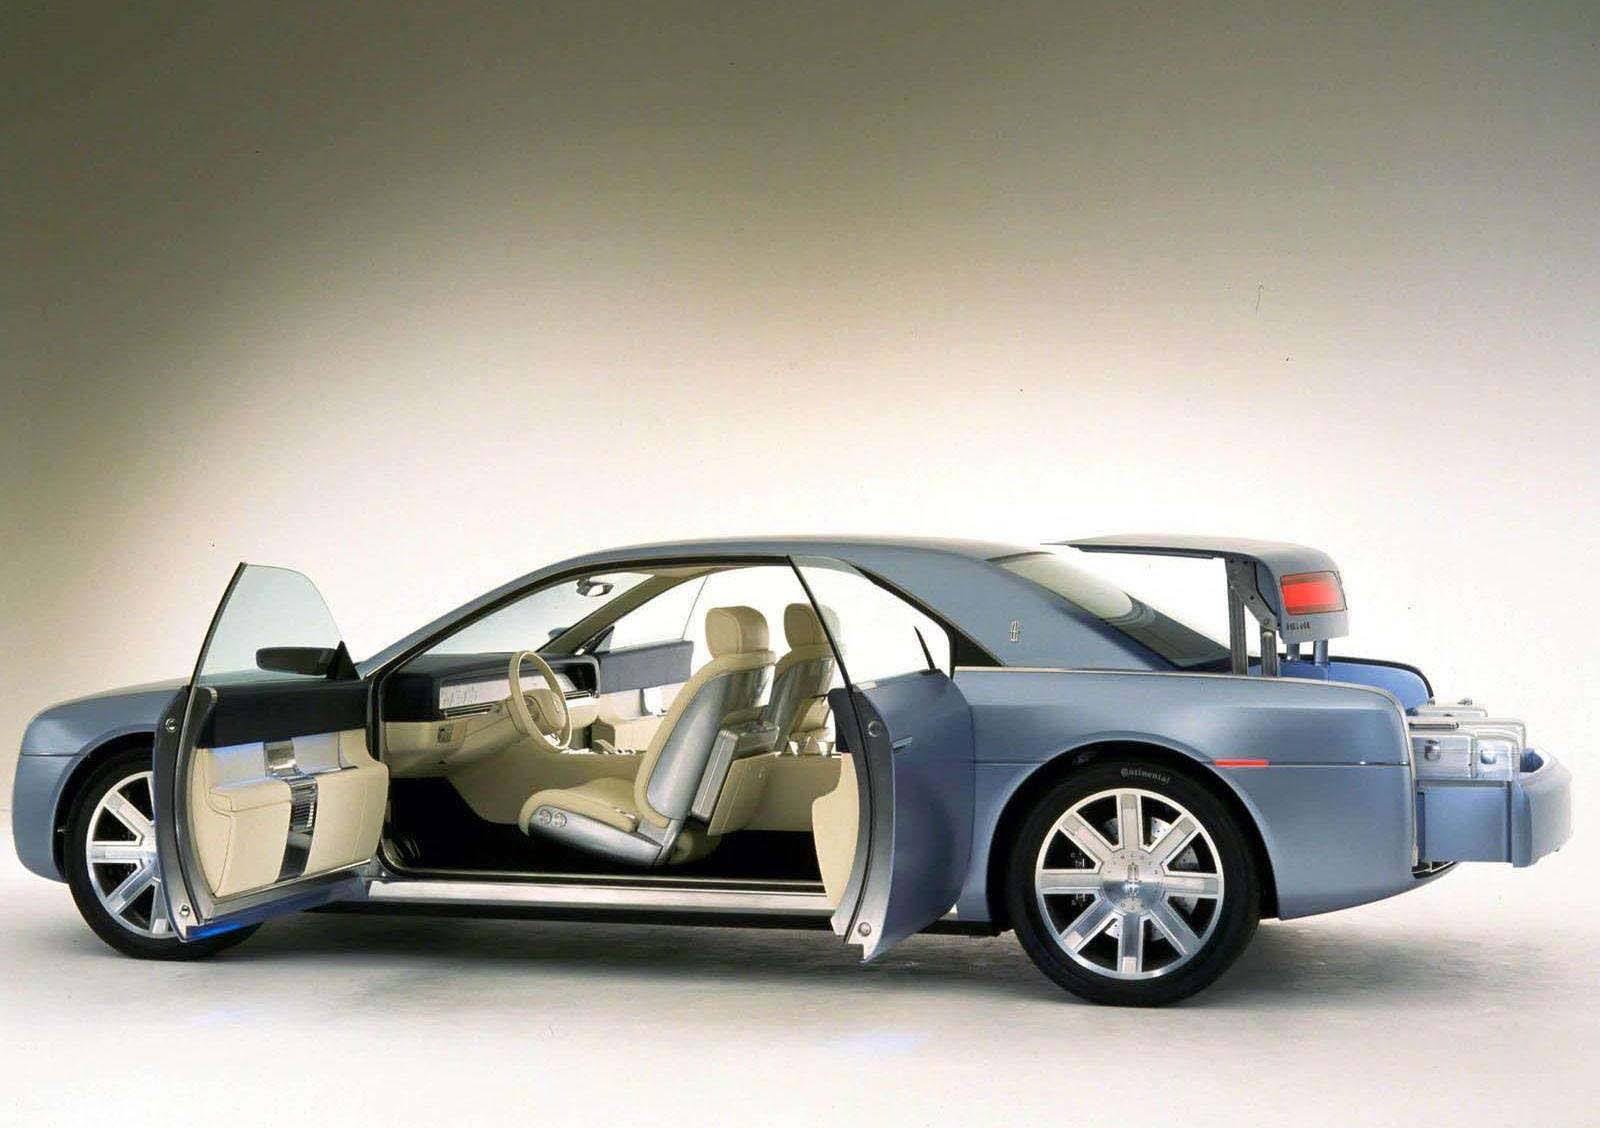 https://www.formtrends.com/wp-content/uploads/2015/03/lincoln-continental_concept_2002_05.jpg